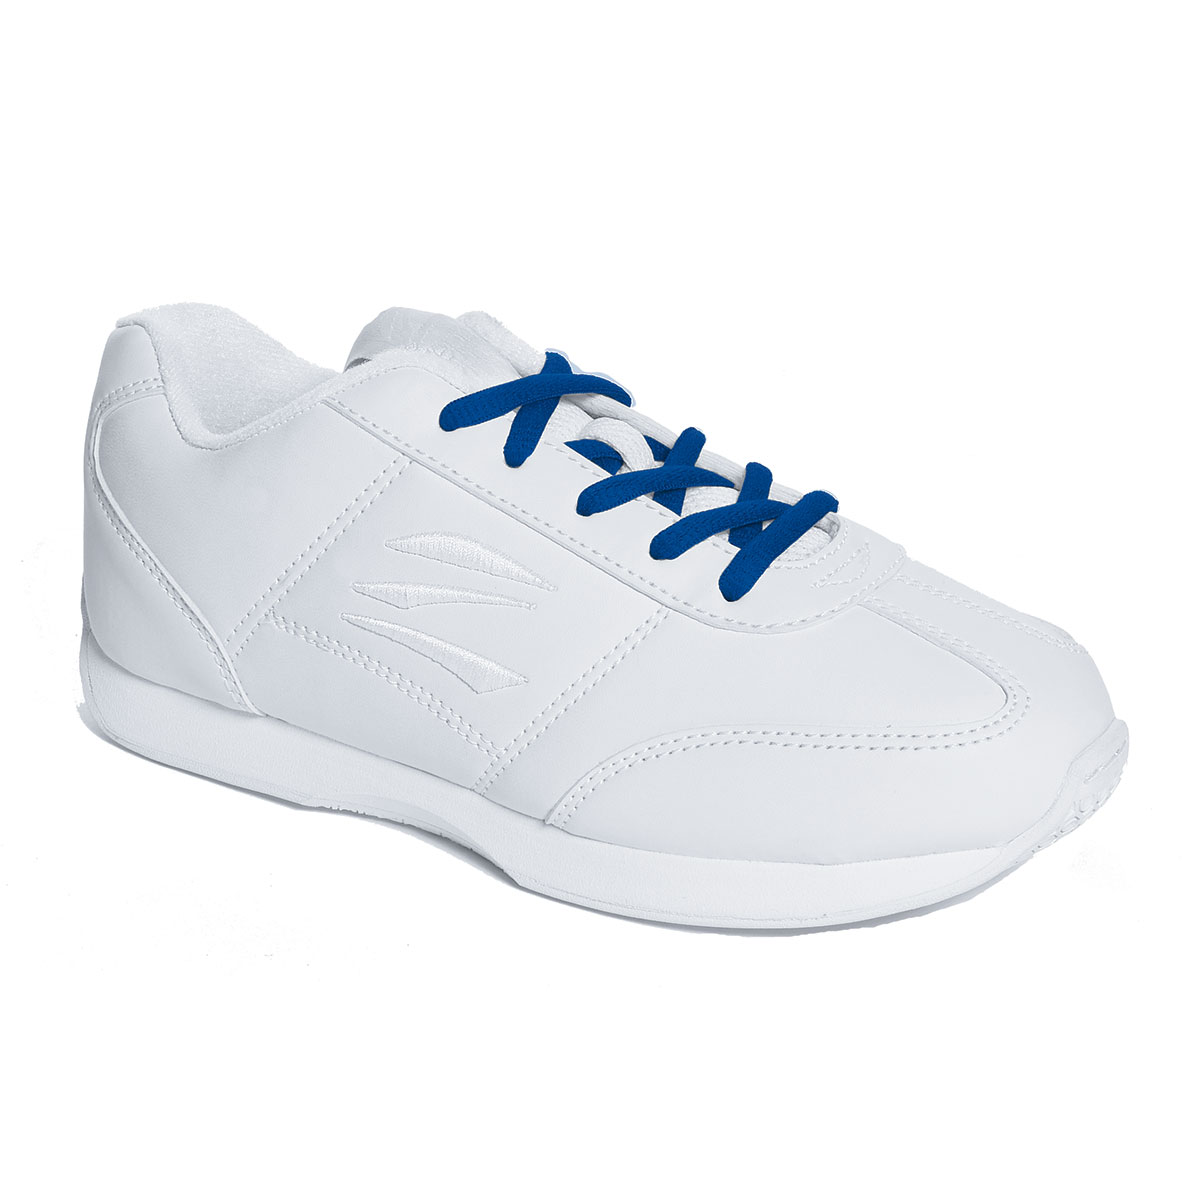 Zephz Cheer Shoes